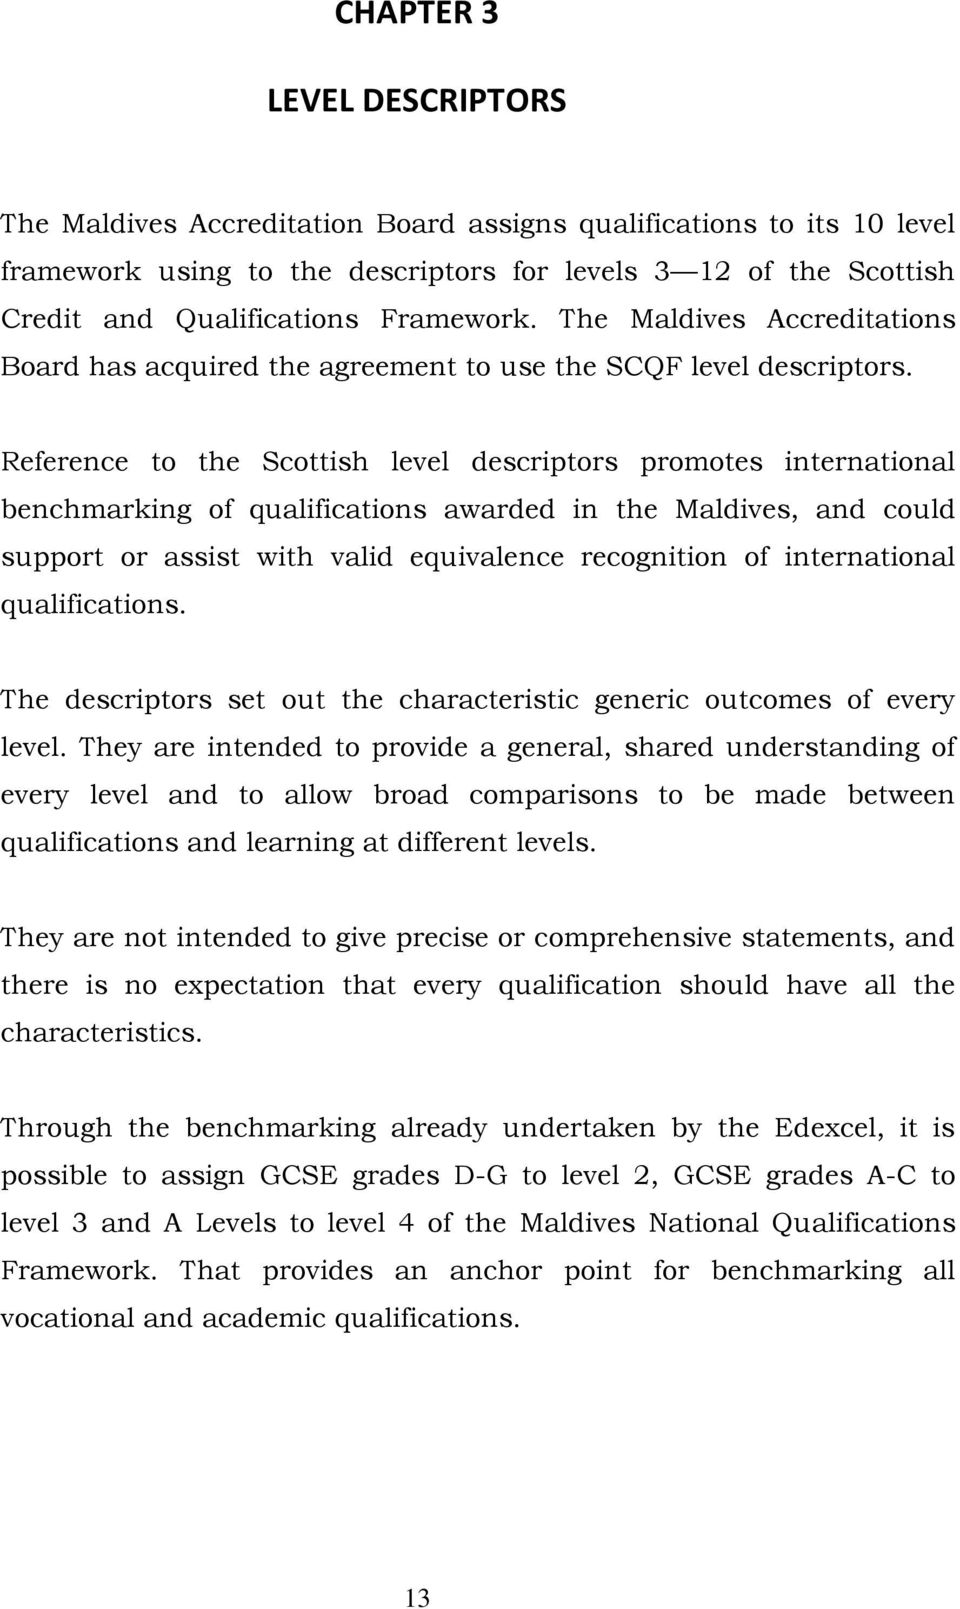 Reference to the Scottish level descriptors promotes international benchmarking of qualifications awarded in the Maldives, could support or assist with valid equivalence recognition of international